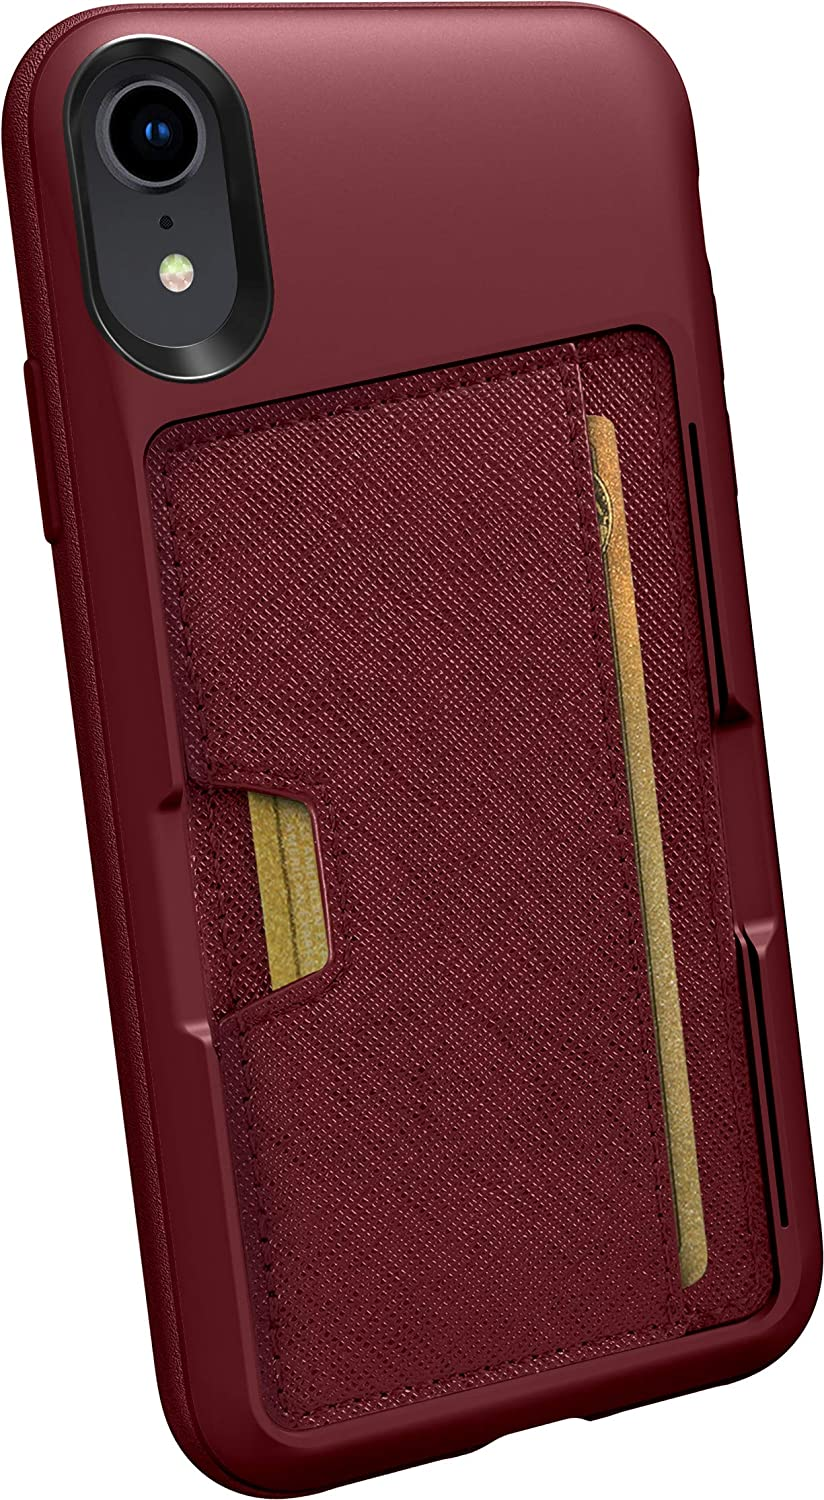 Silk iPhone XR Wallet Case - Wallet Slayer Vol. 2 [Slim Protective Kickstand CM4 Q Card Case Grip Cover] - Red Rover Red Rover QXM-RED